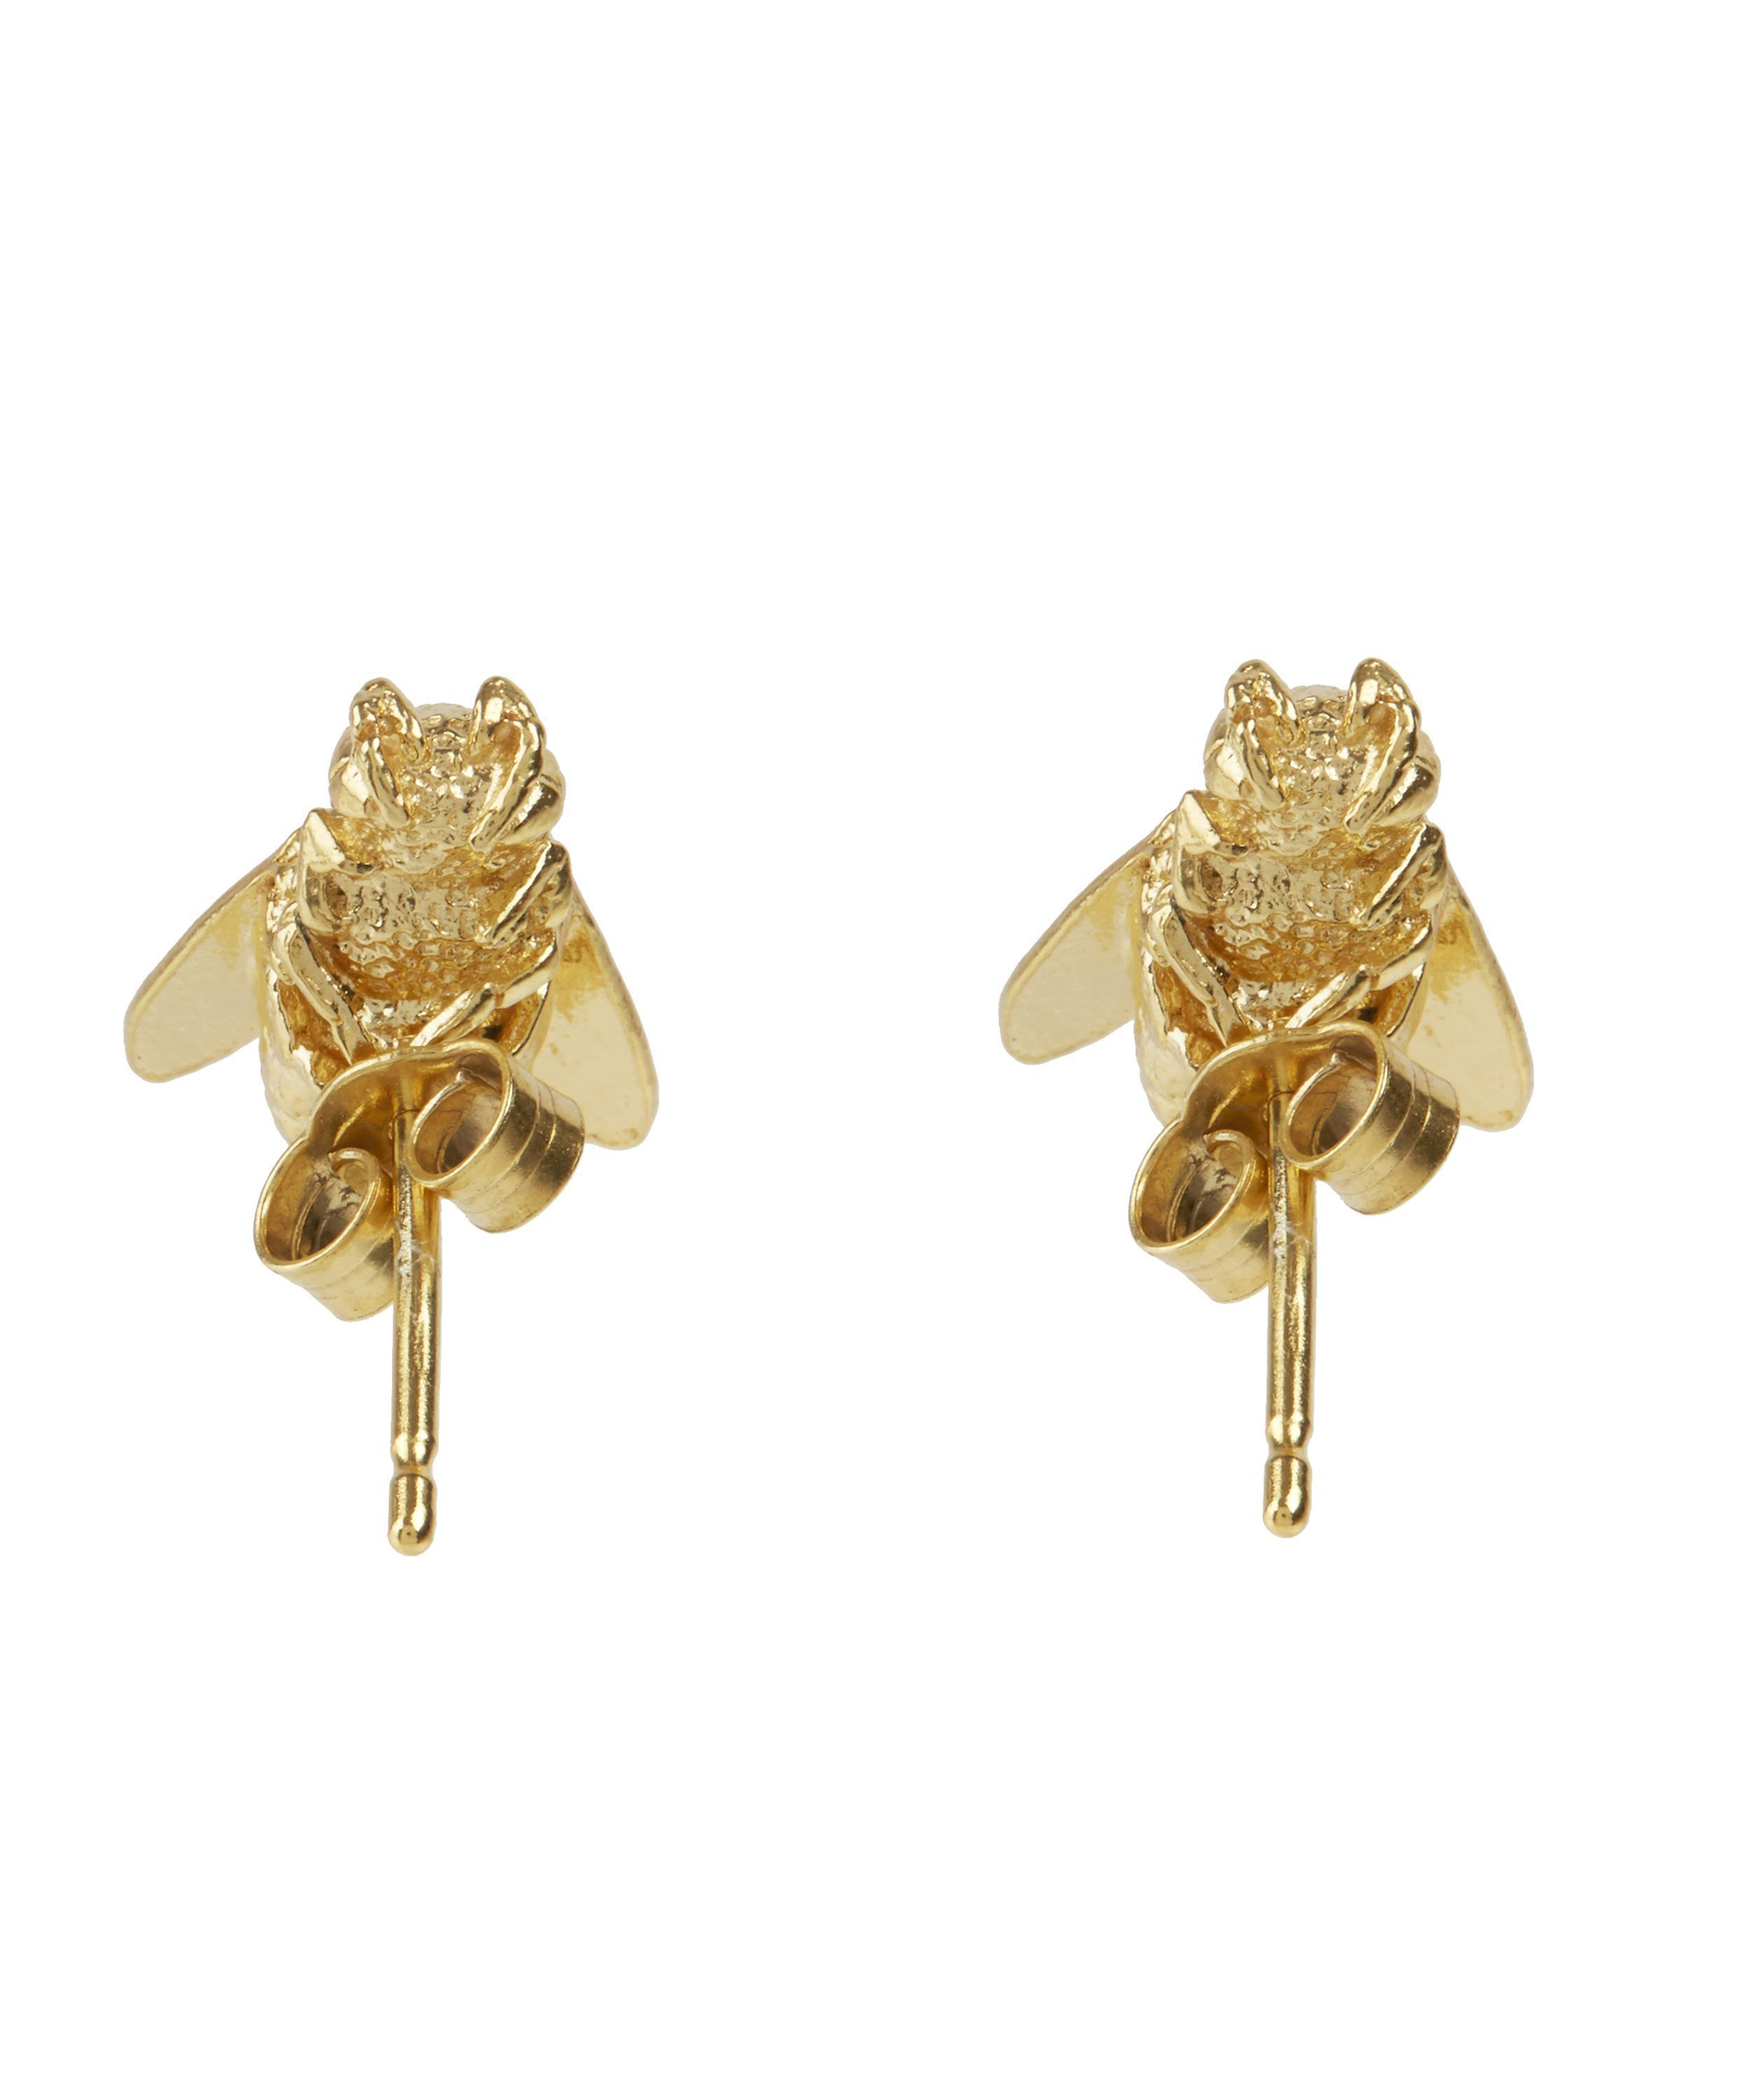 highres jewellery products earrings martick bee stud